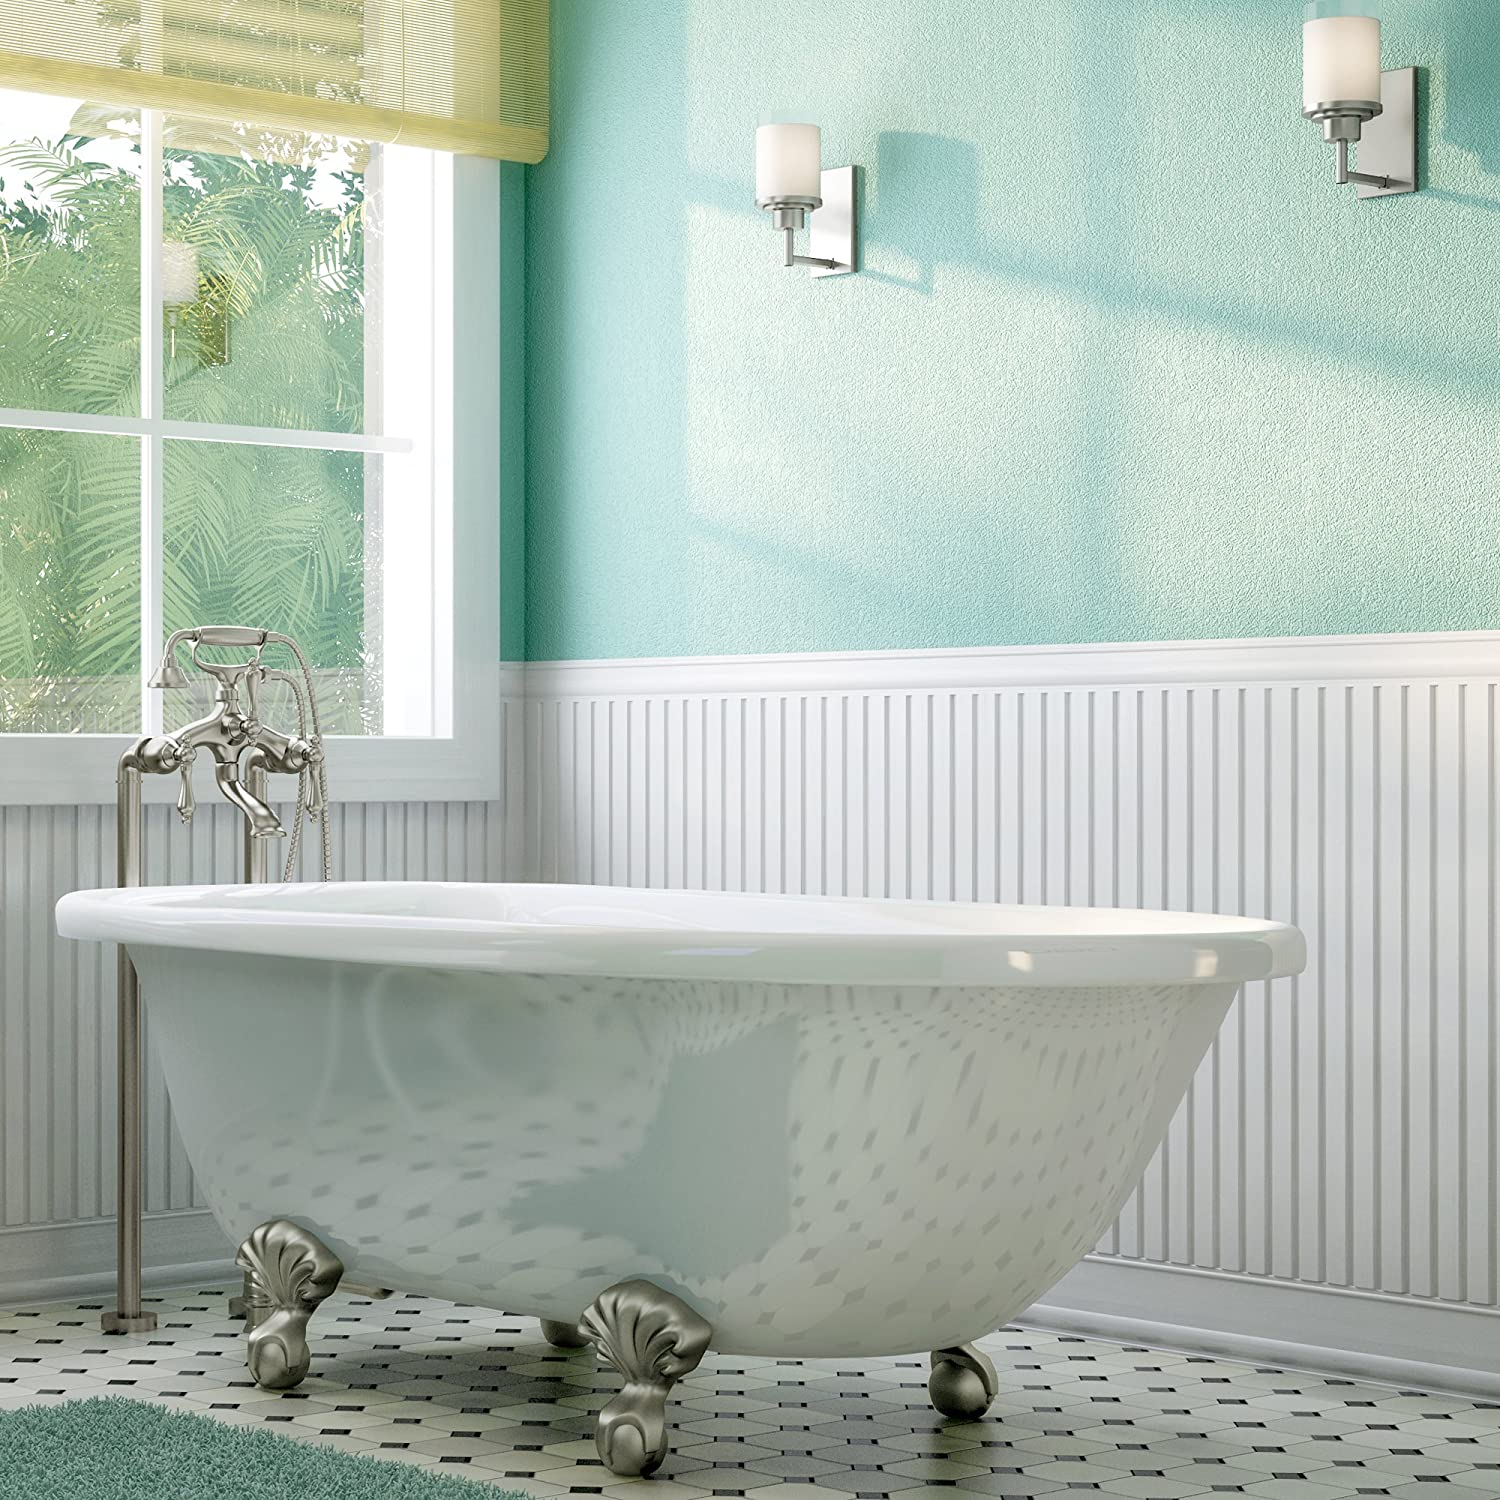 Clawfoot Bathtubs | Amazon.com | Kitchen & Bath Fixtures - Bathtubs